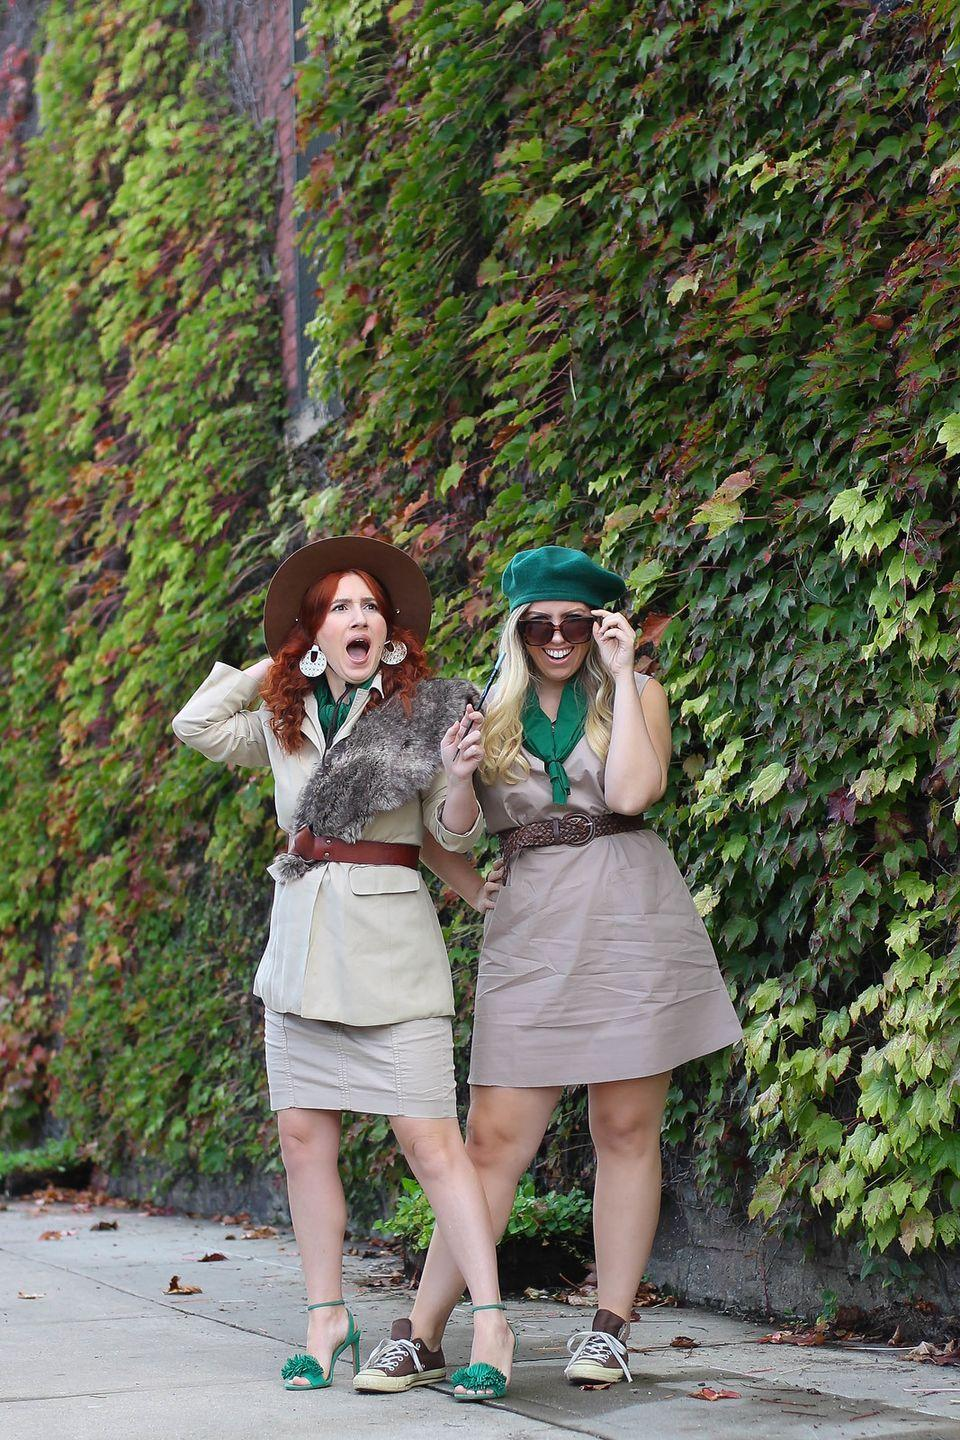 """<p>Beverly Hills, what a thrill! You're sure to earn merit badges in style this Halloween when you DIY your own Phyllis and Hannah Nefler costumes. </p><p><strong>See more at <a href=""""http://livingaftermidnite.com/2018/10/3-nostalgic-halloween-costumes-you-can-pull-together-quickly.html"""" rel=""""nofollow noopener"""" target=""""_blank"""" data-ylk=""""slk:Living After Midnite"""" class=""""link rapid-noclick-resp"""">Living After Midnite</a>.</strong></p><p><a class=""""link rapid-noclick-resp"""" href=""""https://go.redirectingat.com?id=74968X1596630&url=https%3A%2F%2Fwww.walmart.com%2Fip%2FWomen-Pleated-Rhombus-Head-Scarf-Wraps-Scarves-Neckerchief-Bandana-Solid-Color-Blue%2F379593444&sref=https%3A%2F%2Fwww.thepioneerwoman.com%2Fholidays-celebrations%2Fg32645069%2F80s-halloween-costumes%2F"""" rel=""""nofollow noopener"""" target=""""_blank"""" data-ylk=""""slk:SHOP GREEN NECKERCHIEFS"""">SHOP GREEN NECKERCHIEFS </a></p>"""